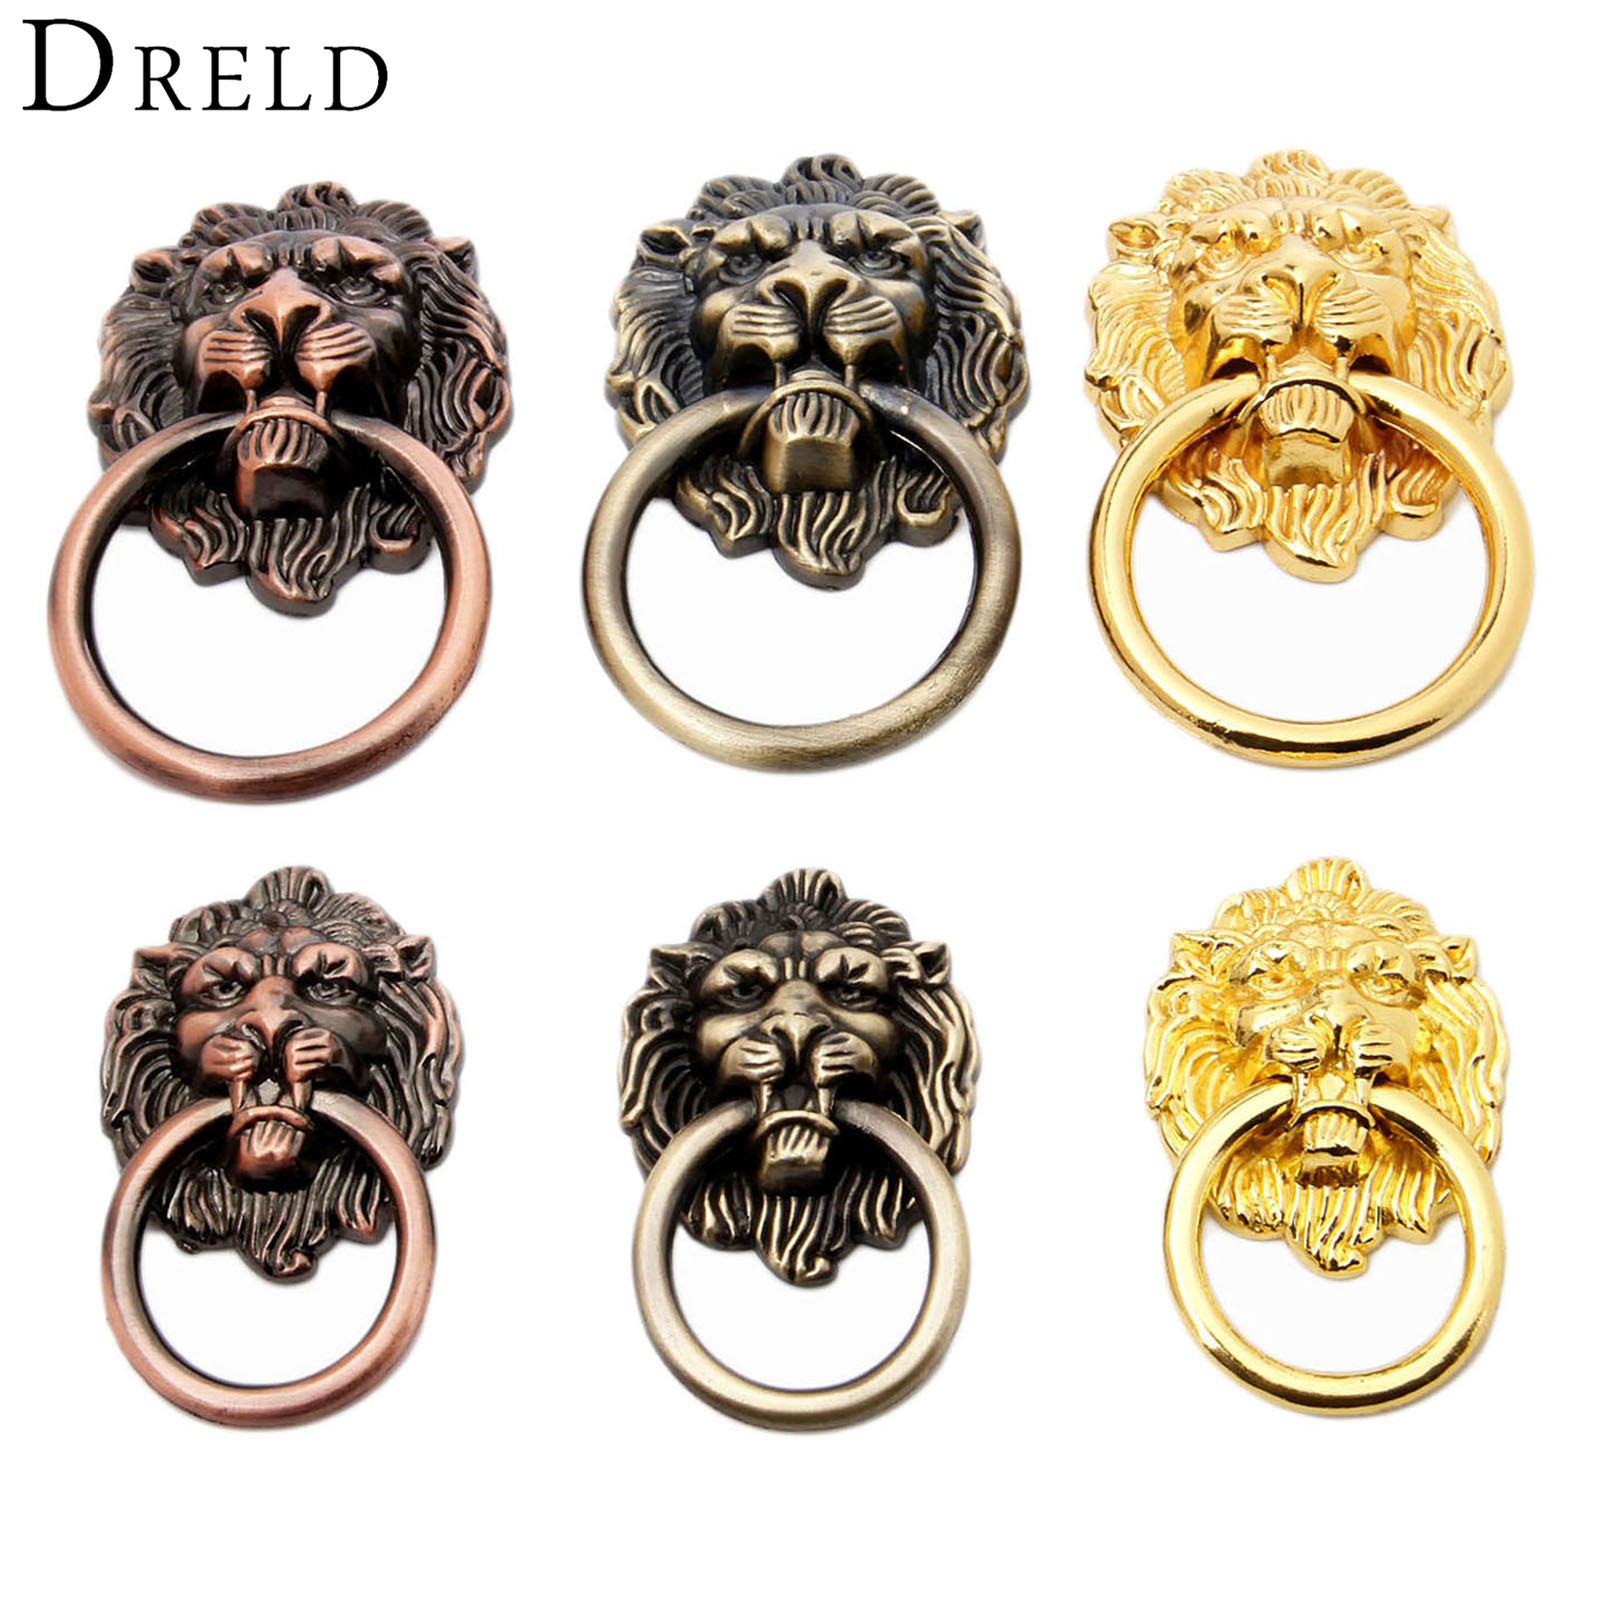 DRELD Antique Furniture Handles Vintage Lion Head Cabinet Knobs and Handles Furniture Door Cabinet Drawer Pull Handle Knob Ring 2017 dhl free shipping naturehike 2 person tent ultralight 20d silicone fabric tents double layer camping tent outdoor tent